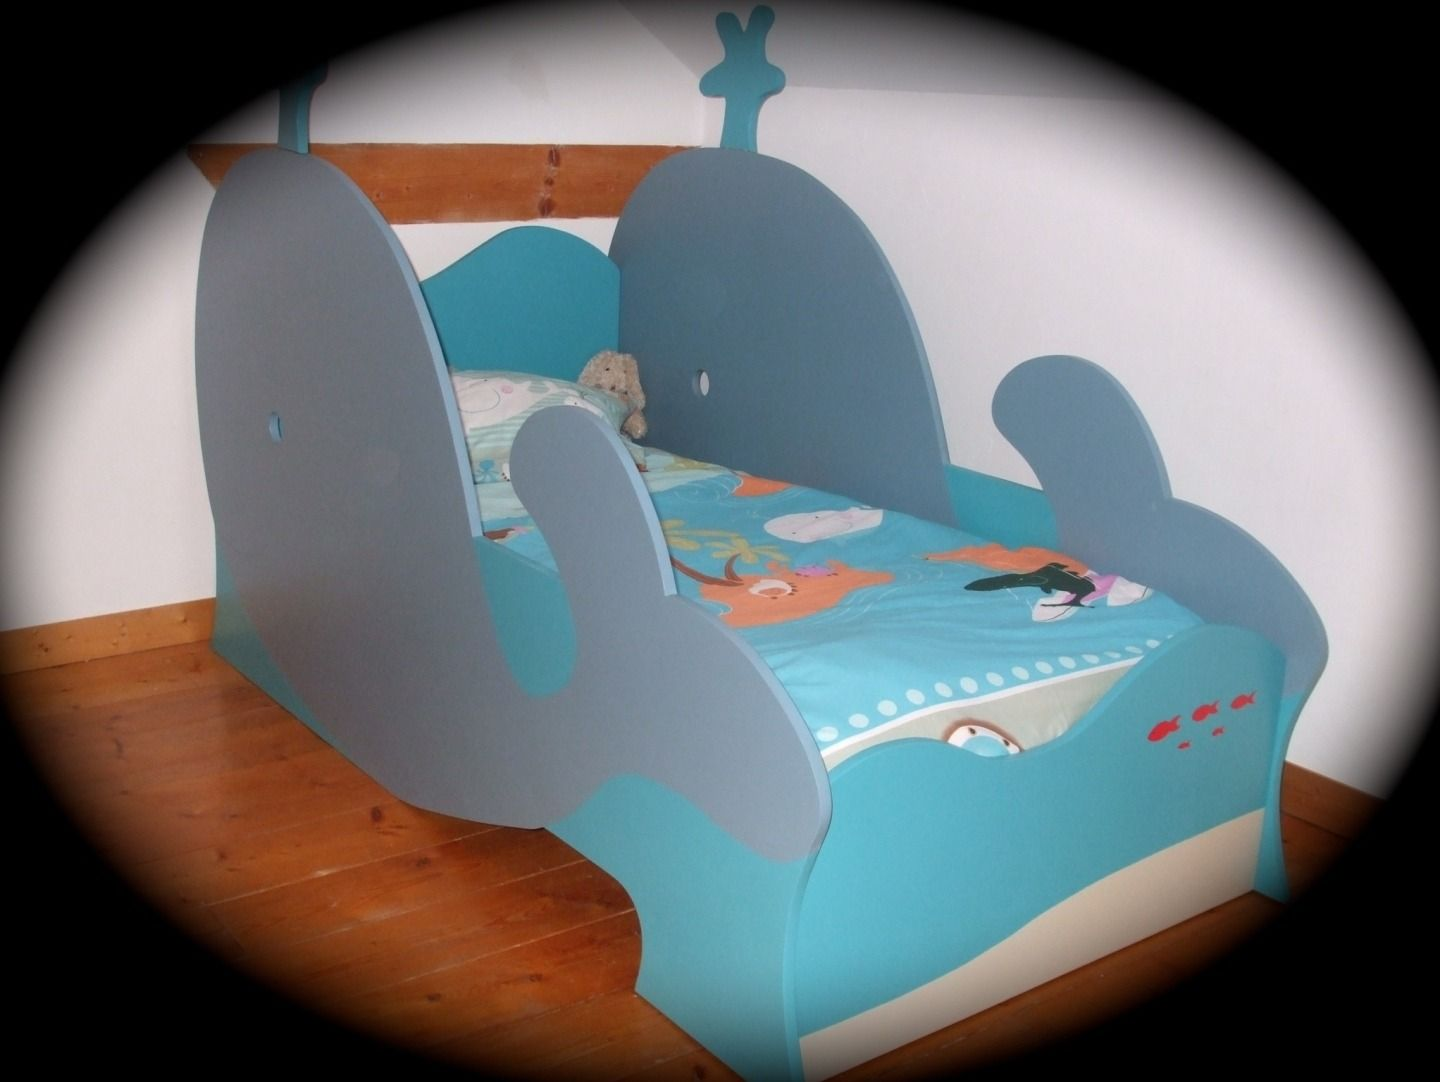 lit baleine pour enfant gar on original et cologique chambre d 39 enfant de b b par lolistel. Black Bedroom Furniture Sets. Home Design Ideas